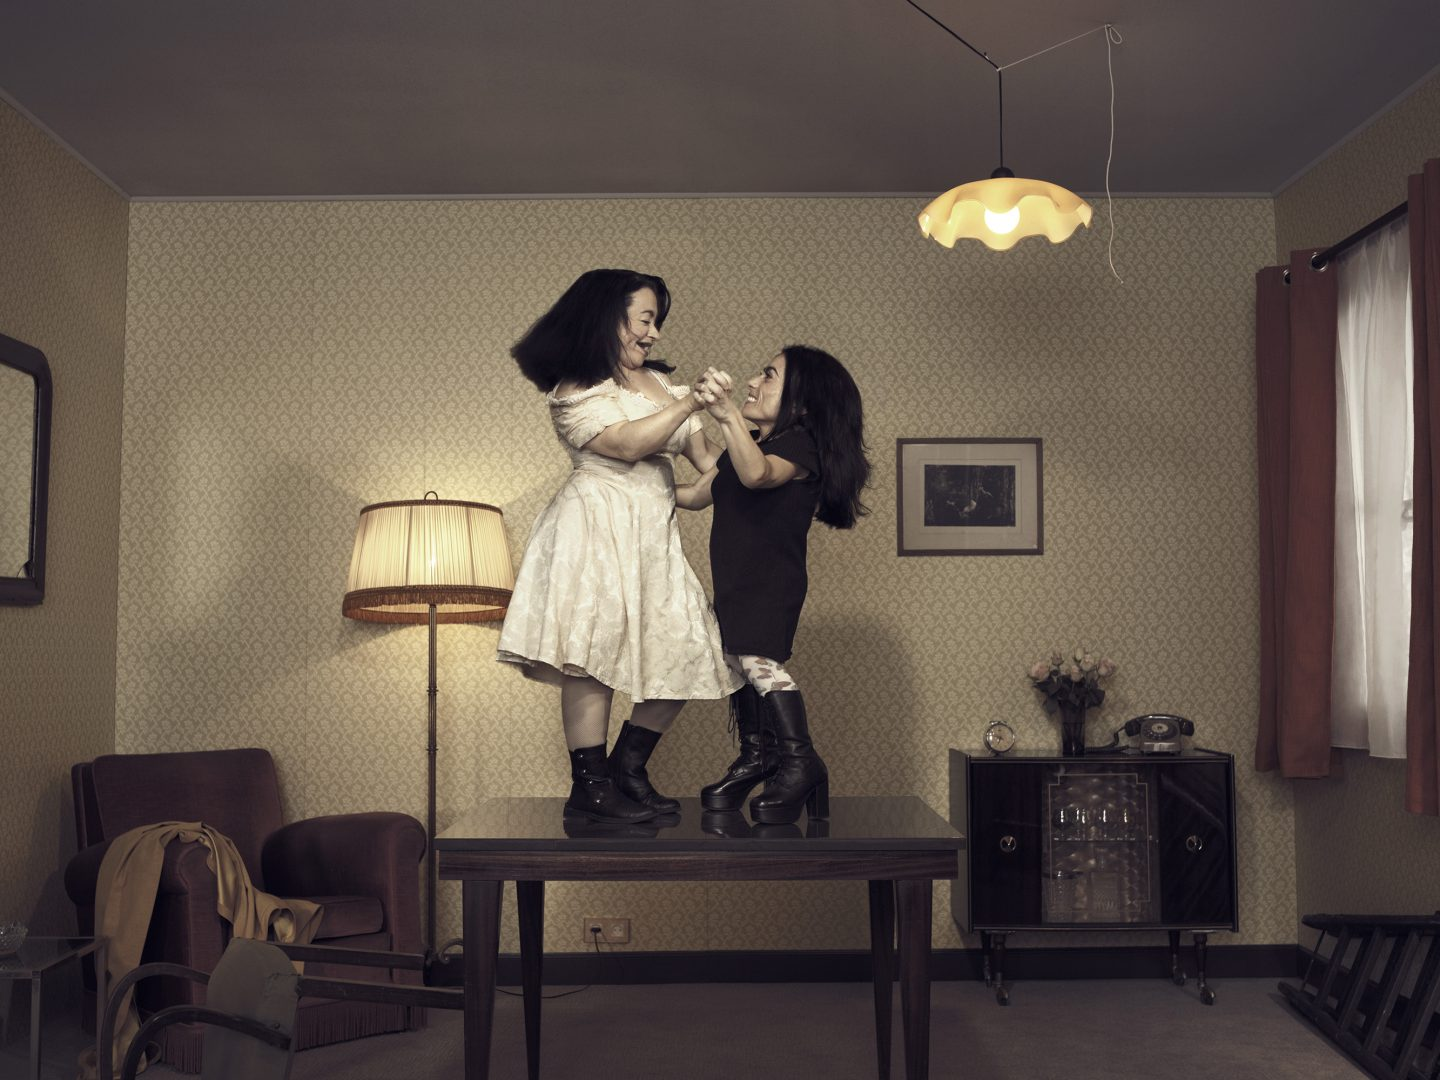 2 dwarfs dancing on table in room 42 by Stefan Rappo